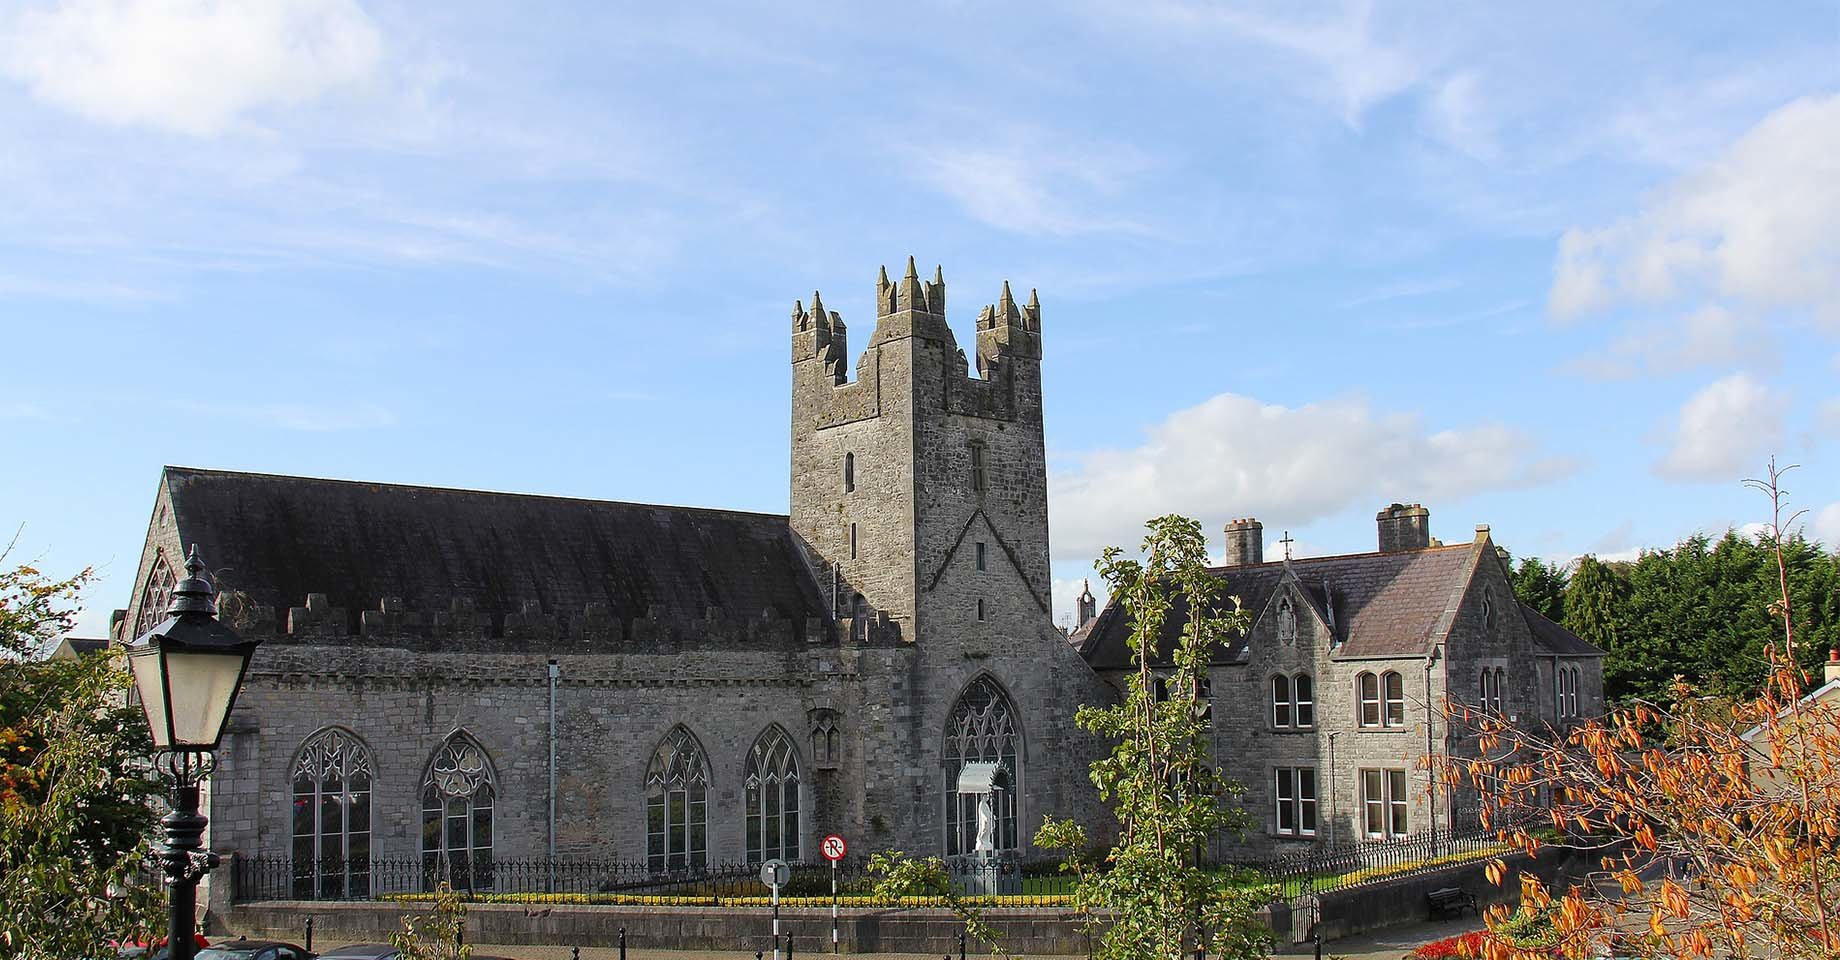 The Black Abbey, Kilkenny